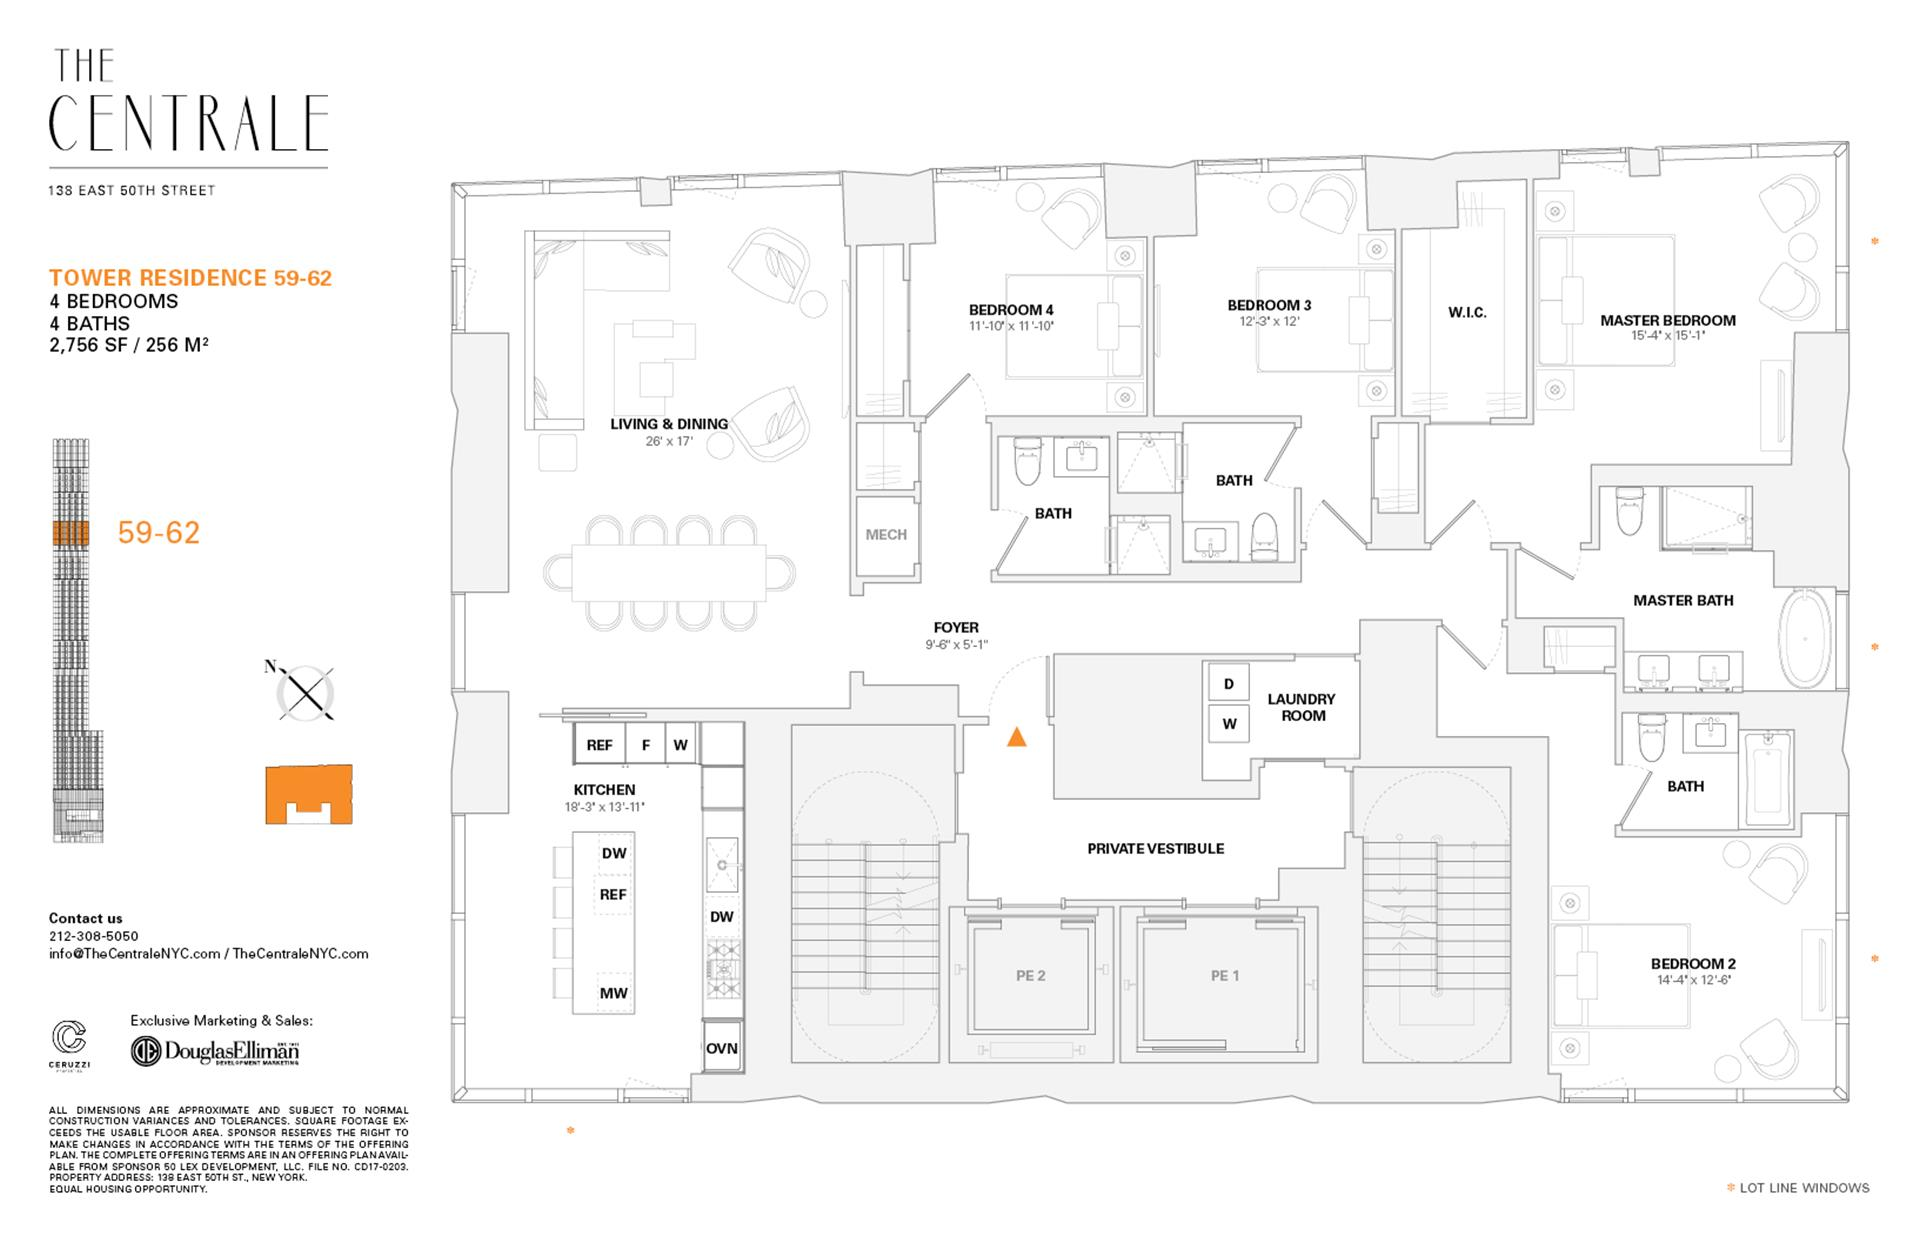 Floor plan of The Centrale, 138 East 50th St, TR59 - Midtown, New York